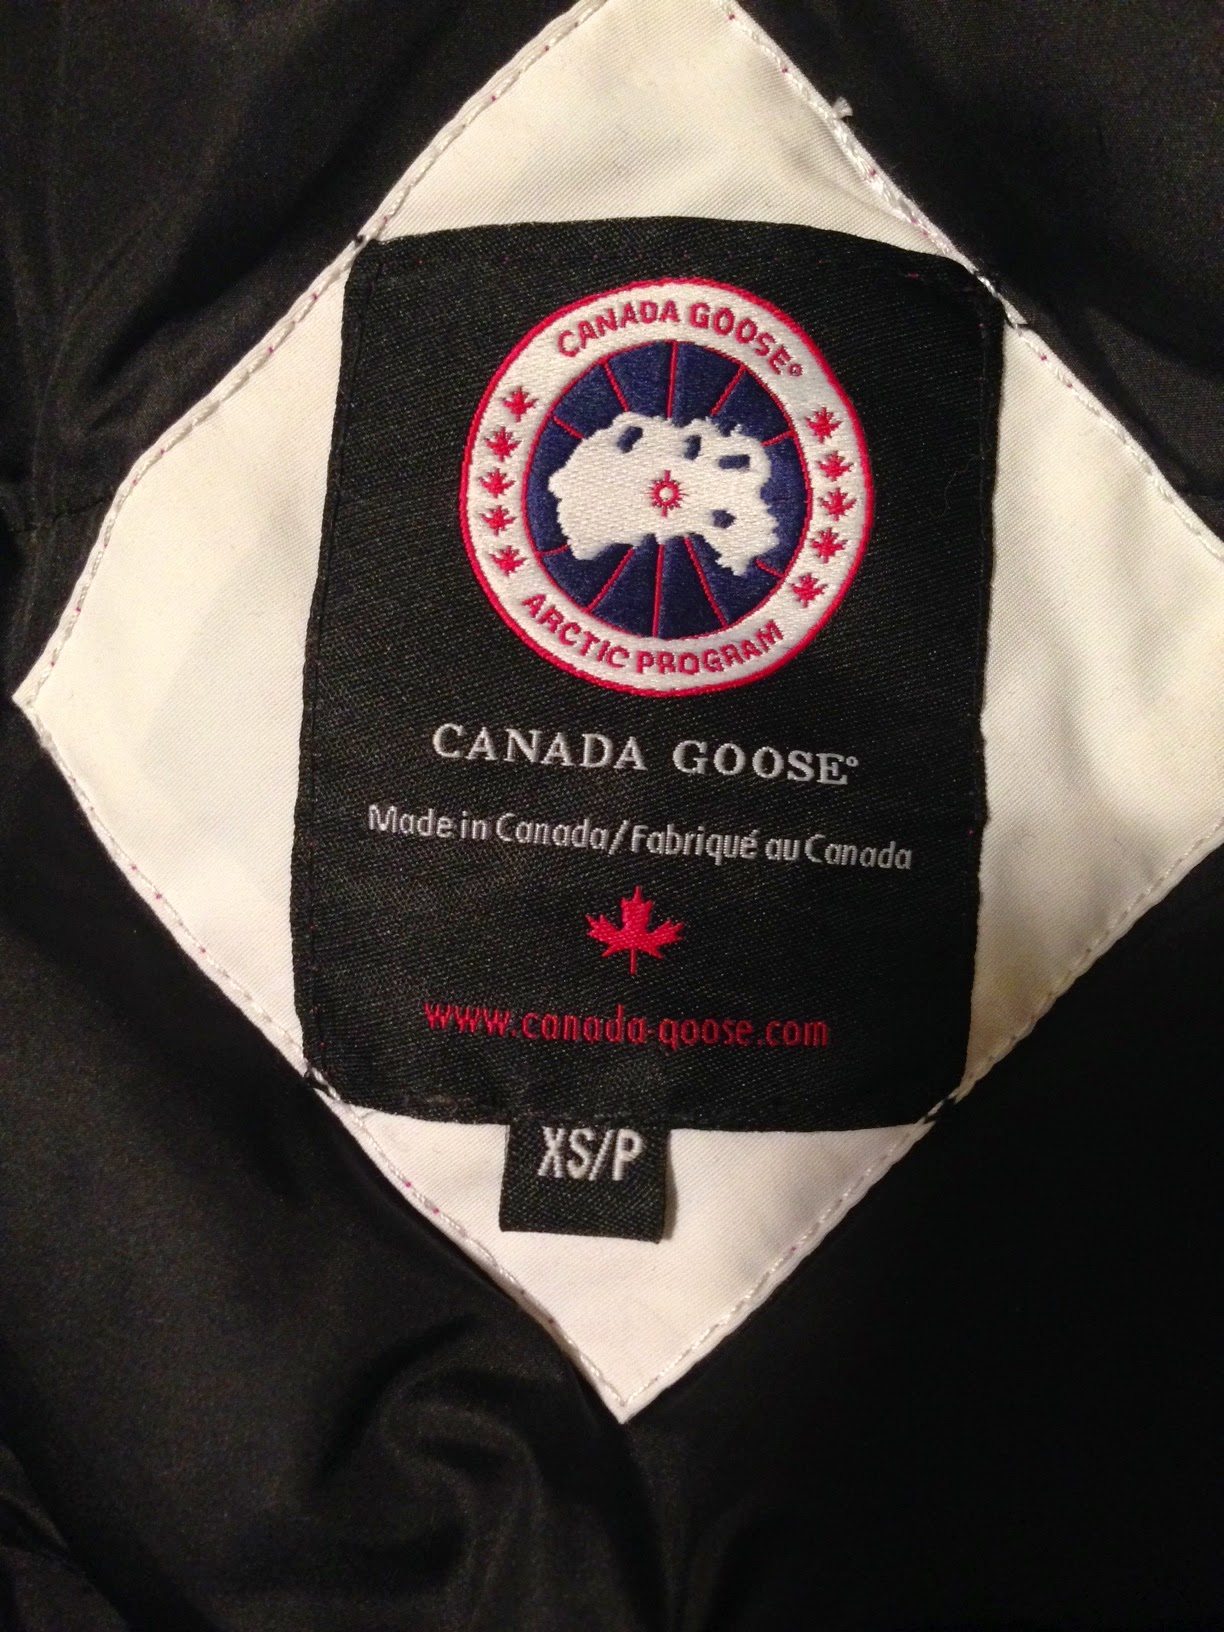 Canada Goose montebello parka online price - Merged] The Official Canada Goose Authenticity / Legit Check ...